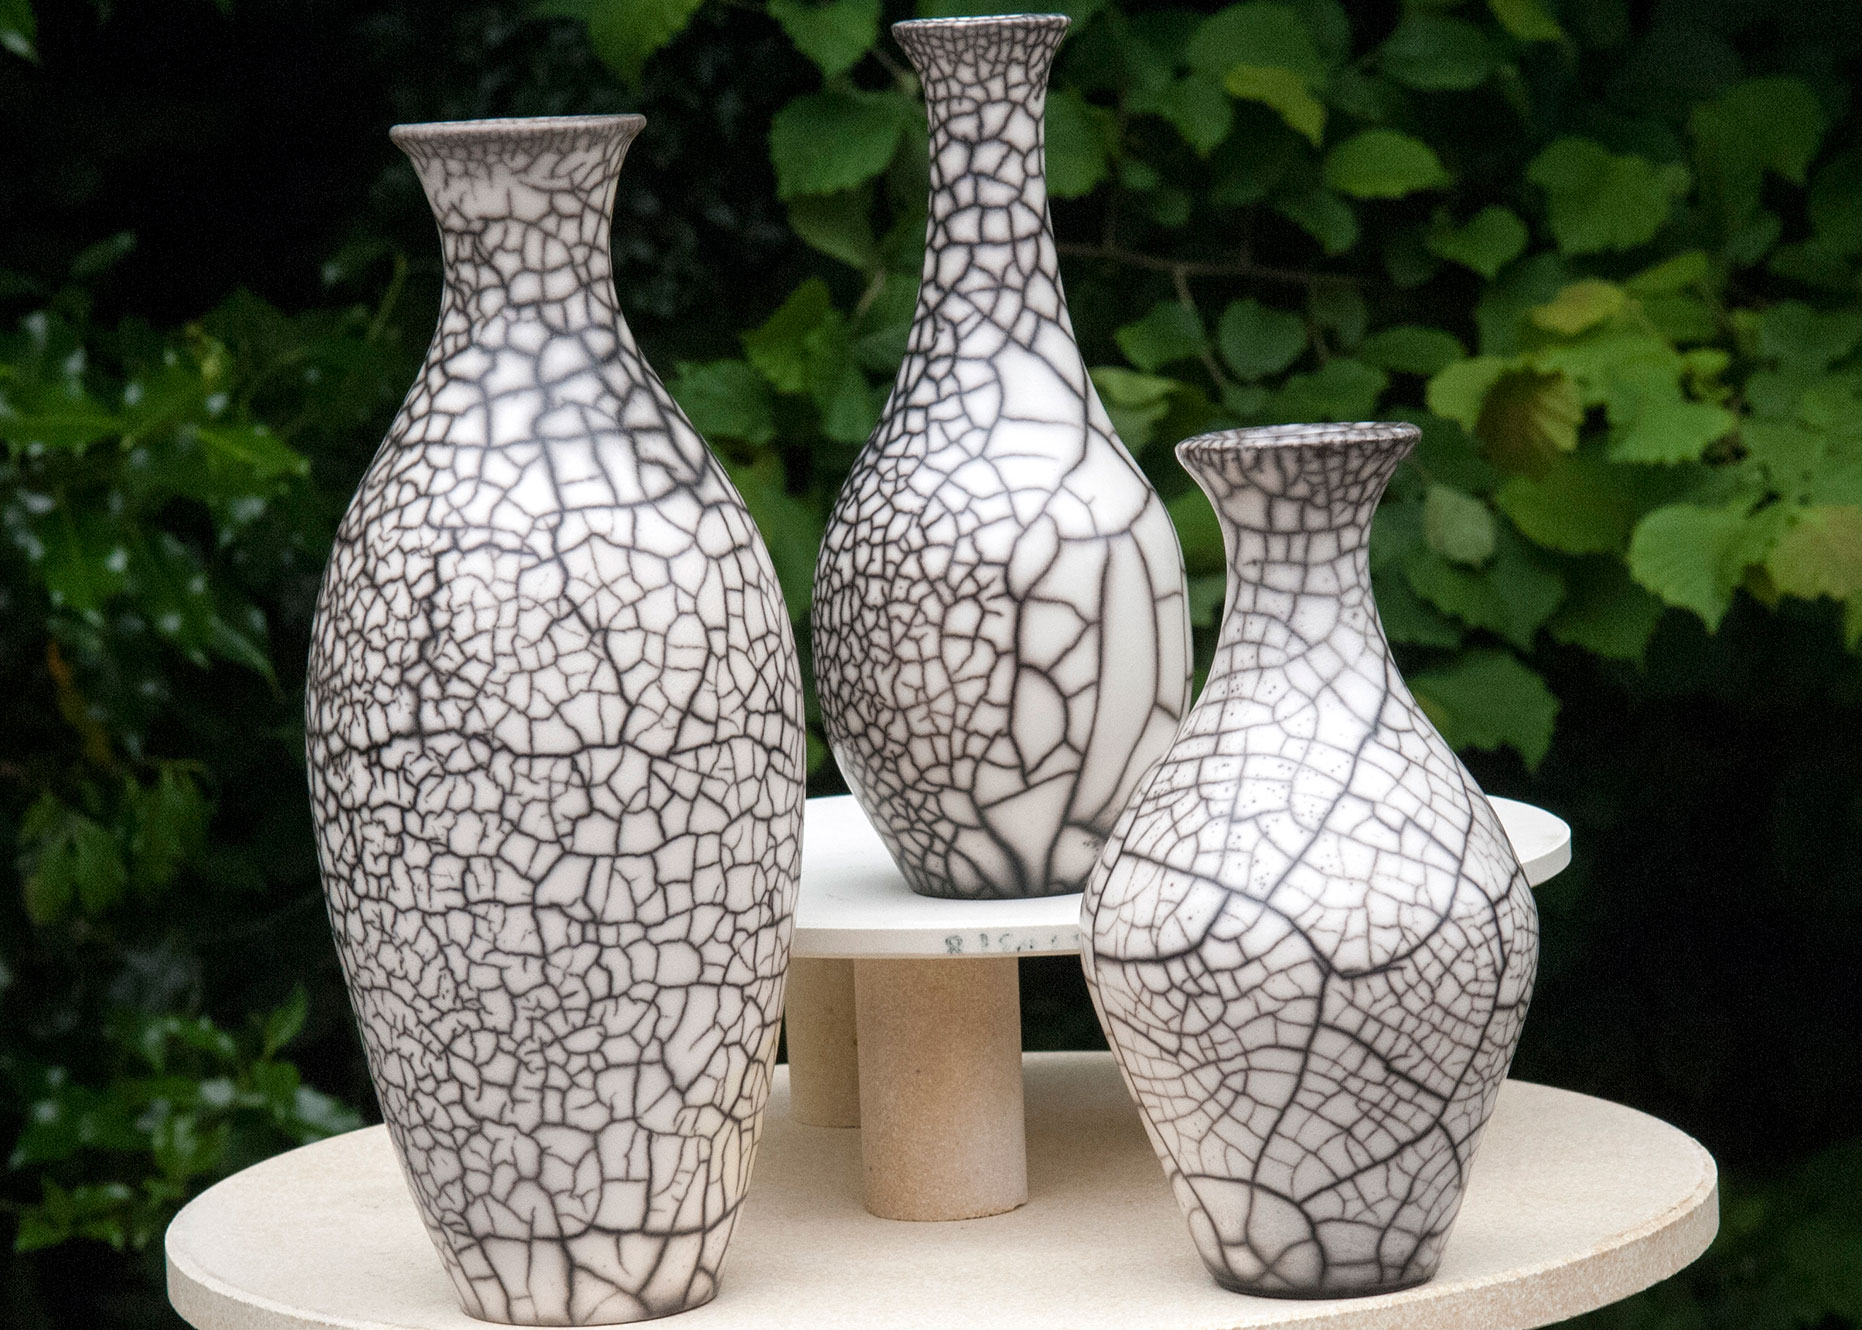 Naked Raku Set of pots